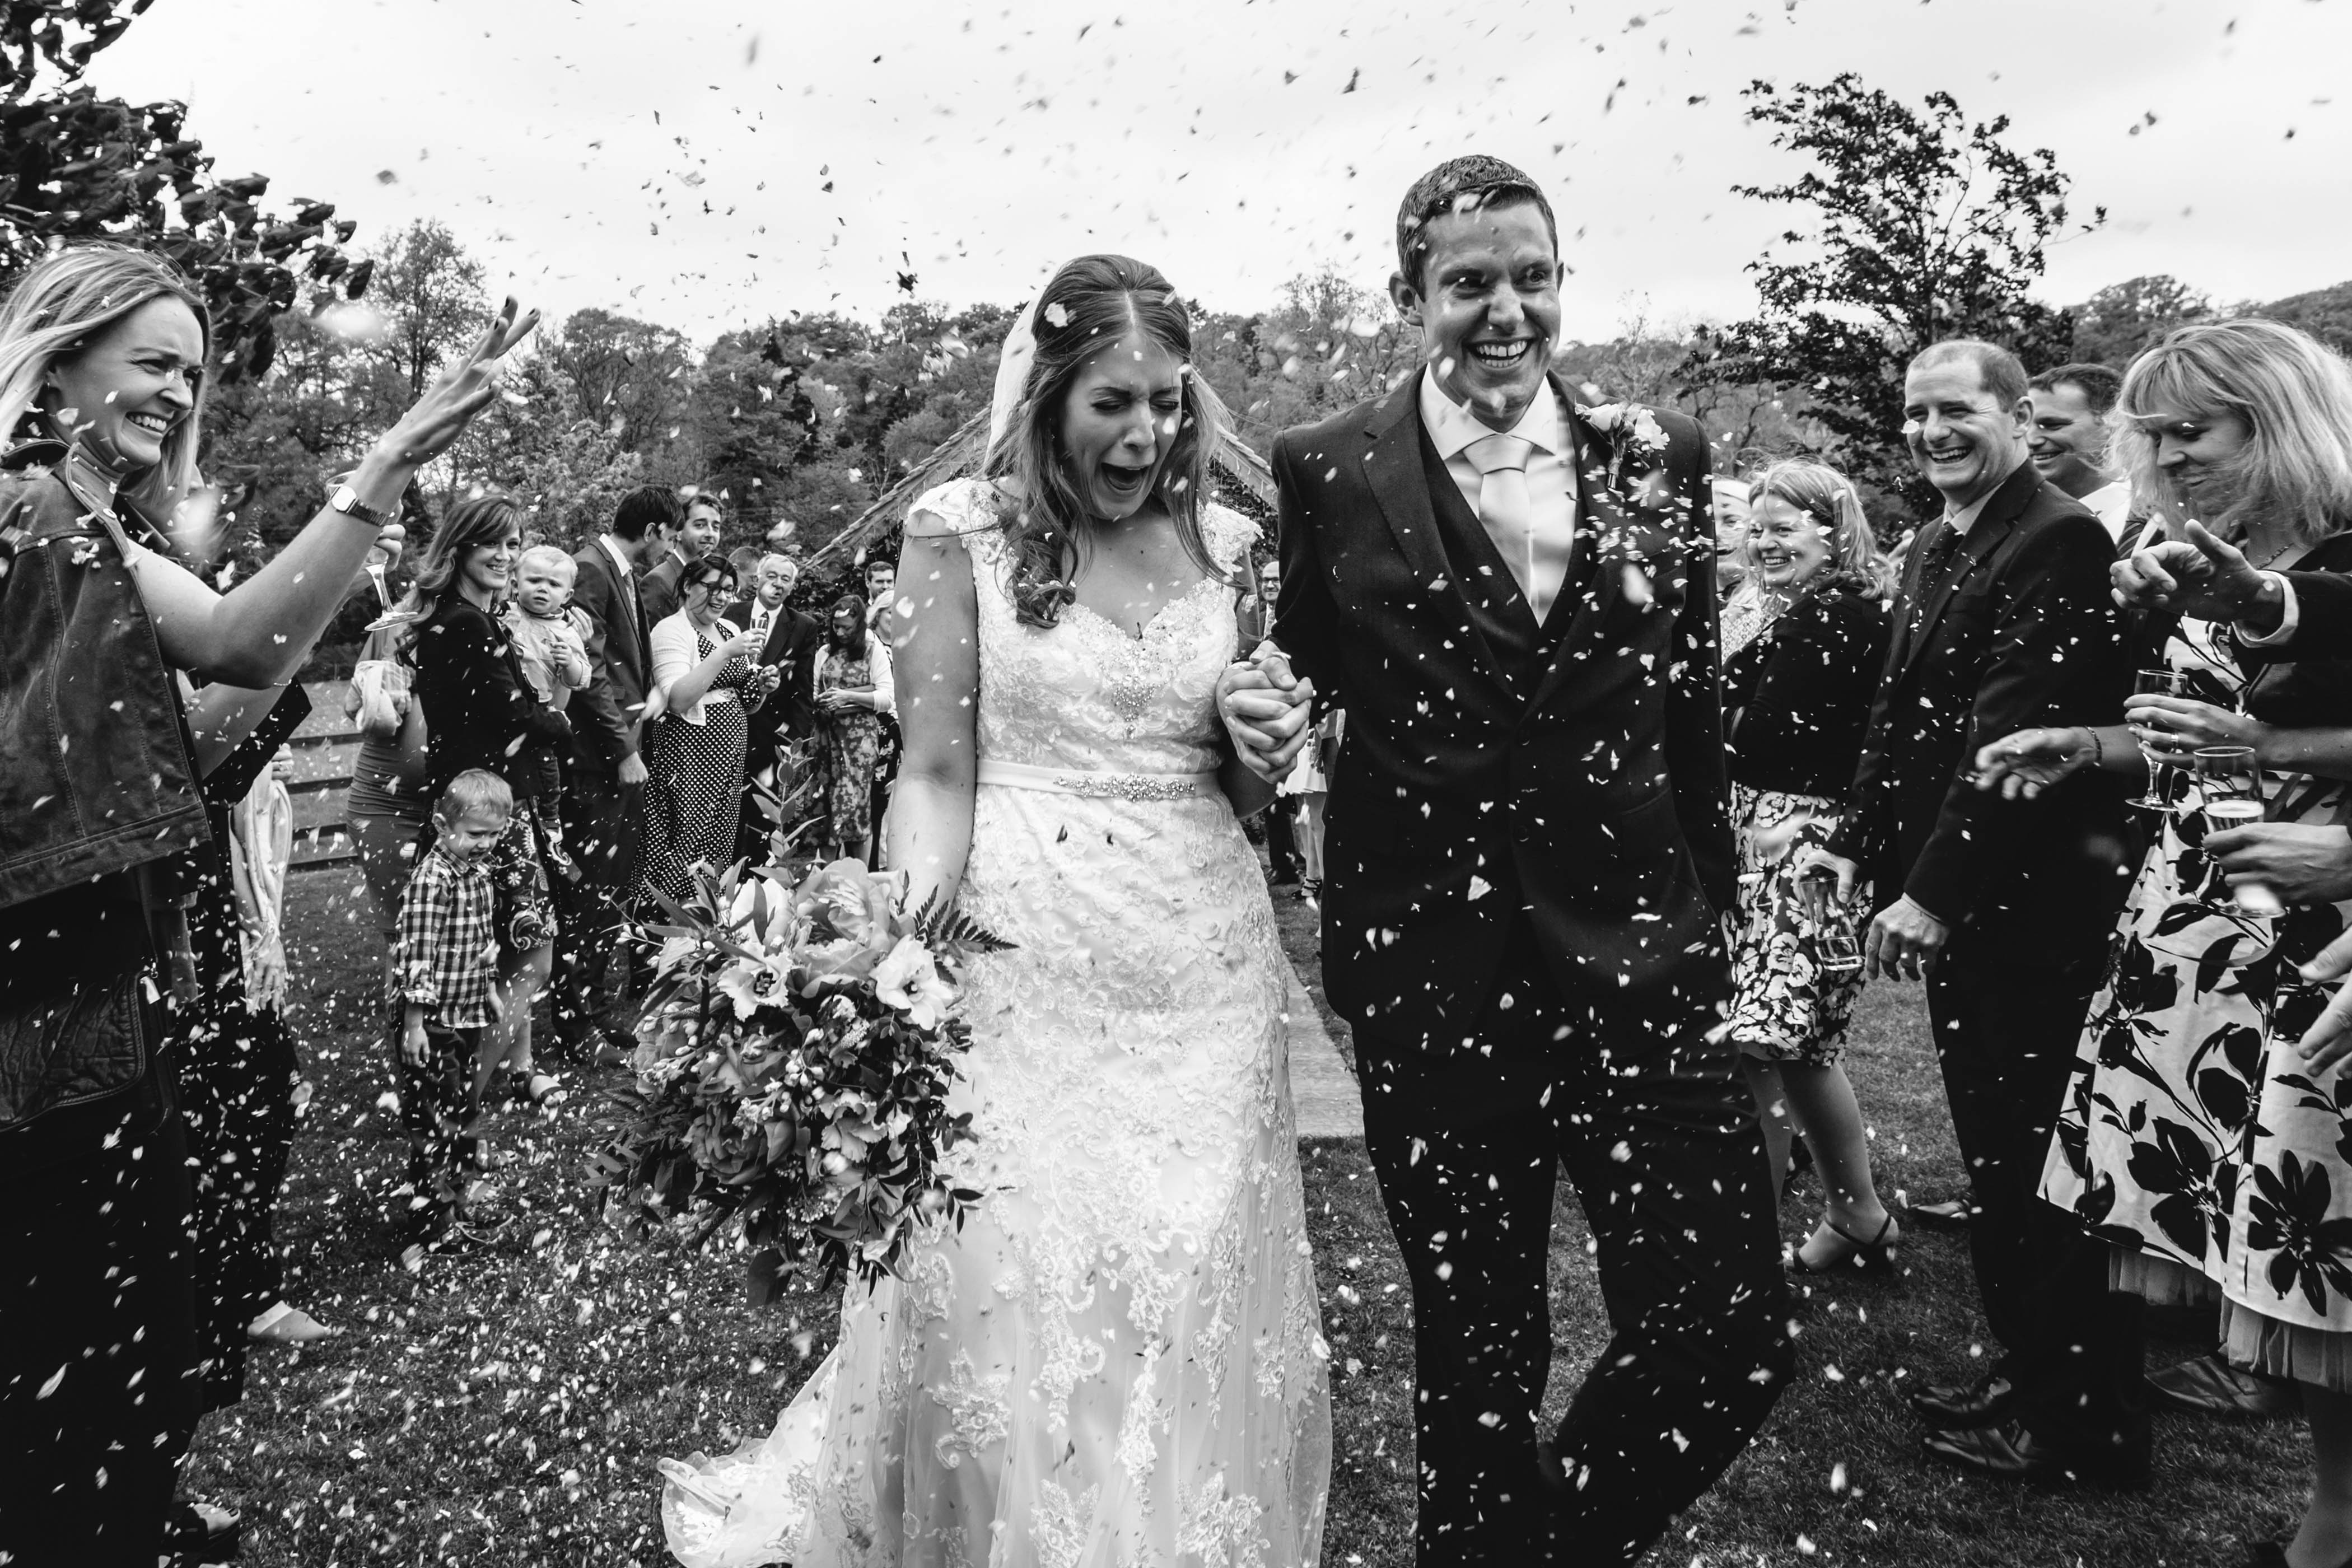 confetti thrown on newlyweds